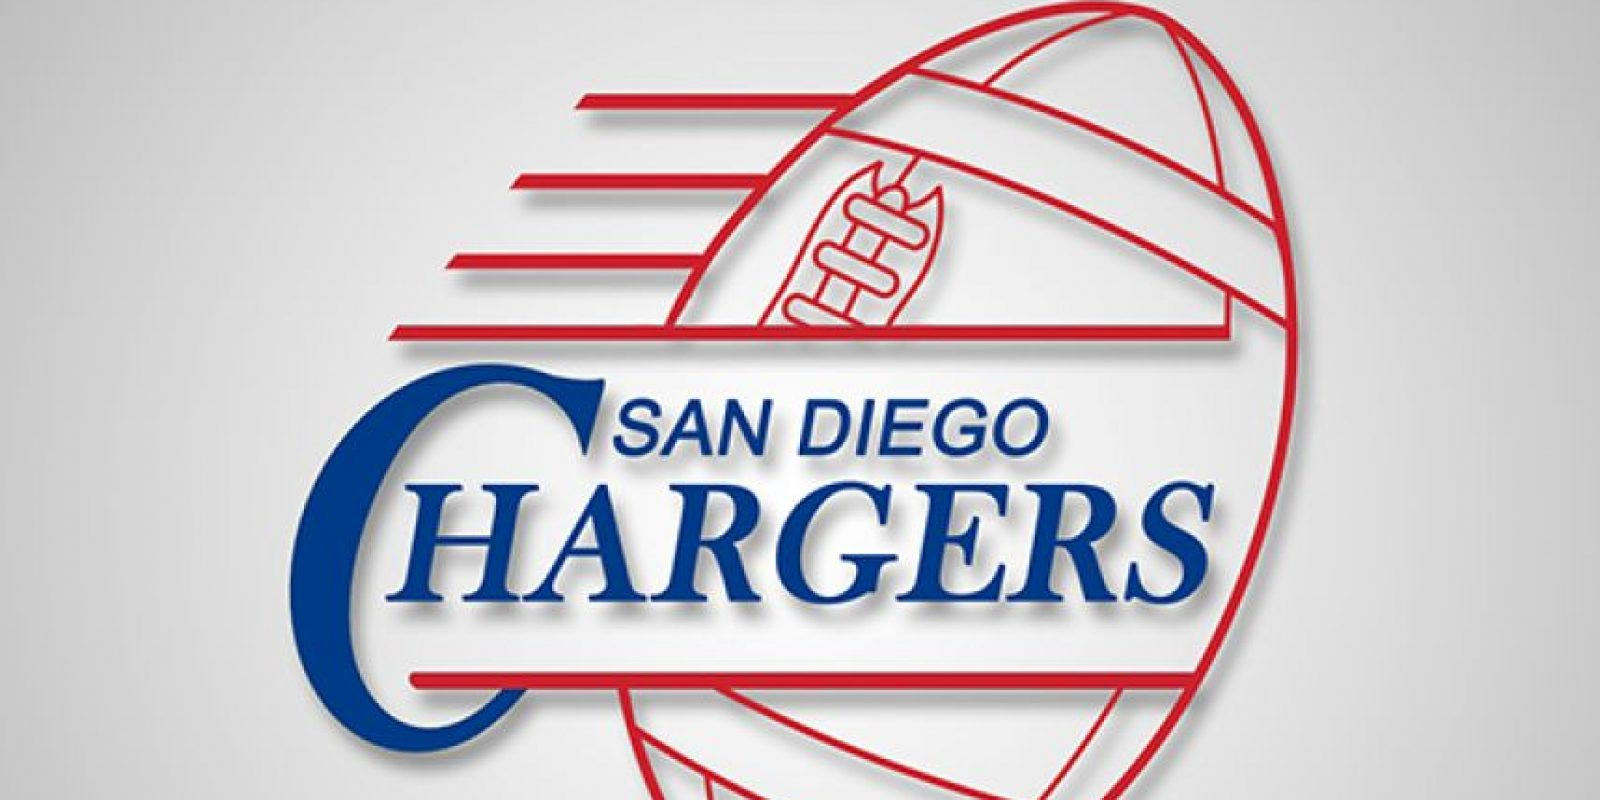 Los Angeles Clippers y San Diego Chargers Foto:DaylySnark